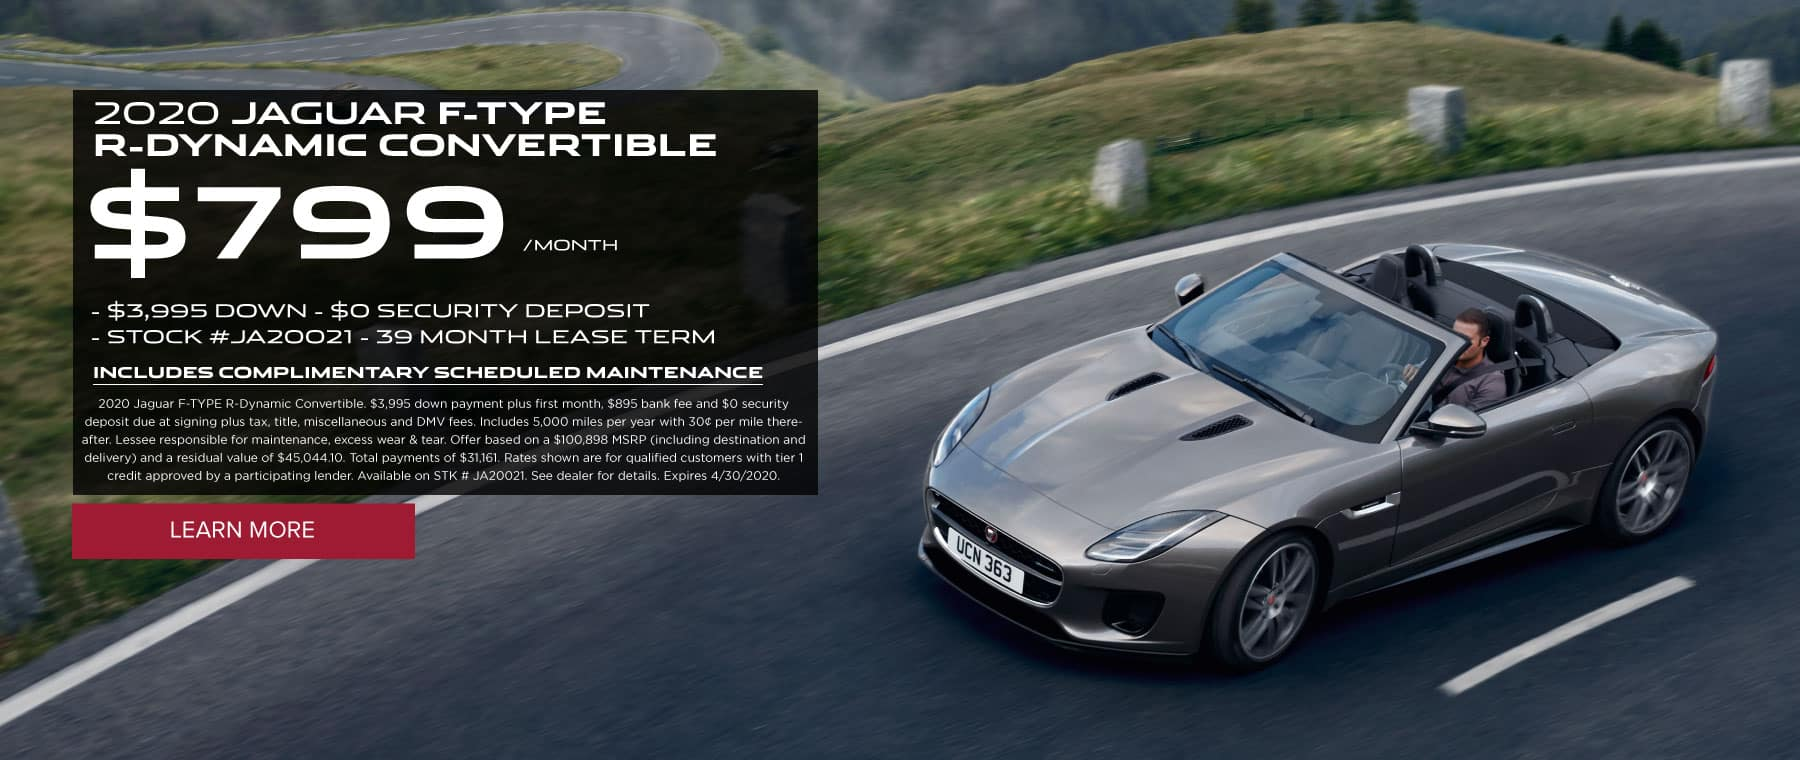 2020 JAGUAR F-TYPE R-DYNAMIC COUPE $759/MONTH $3,995 DOWN $0 SECURITY DEPOSIT STOCK #JA20177 33 MONTH LEASE TERM. $1000 bonus credit INCLUDES COMPLIMENTARY SCHEDULED MAINTENANCE 2020 Jaguar F-TYPE R-Dynamic Coupe. $3,995 down payment plus first month, $895 bank fee and $0 security deposit due at signing plus tax, title, miscellaneous and DMV fees. Includes 5,000 miles per year with 30¢ per mile thereafter. Lessee responsible for maintenance, excess wear & tear. Offer based on a $95,508 MSRP (including destination and delivery) and a residual value of $44,888.76. Total payments of $29,601. Rates shown are for qualified customers with tier 1 credit approved by a participating lender. Available on STK # JA20177. See dealer for details. Expires 3/2/2020. Click to learn more. Dark gray F-TYPE Coupe on road